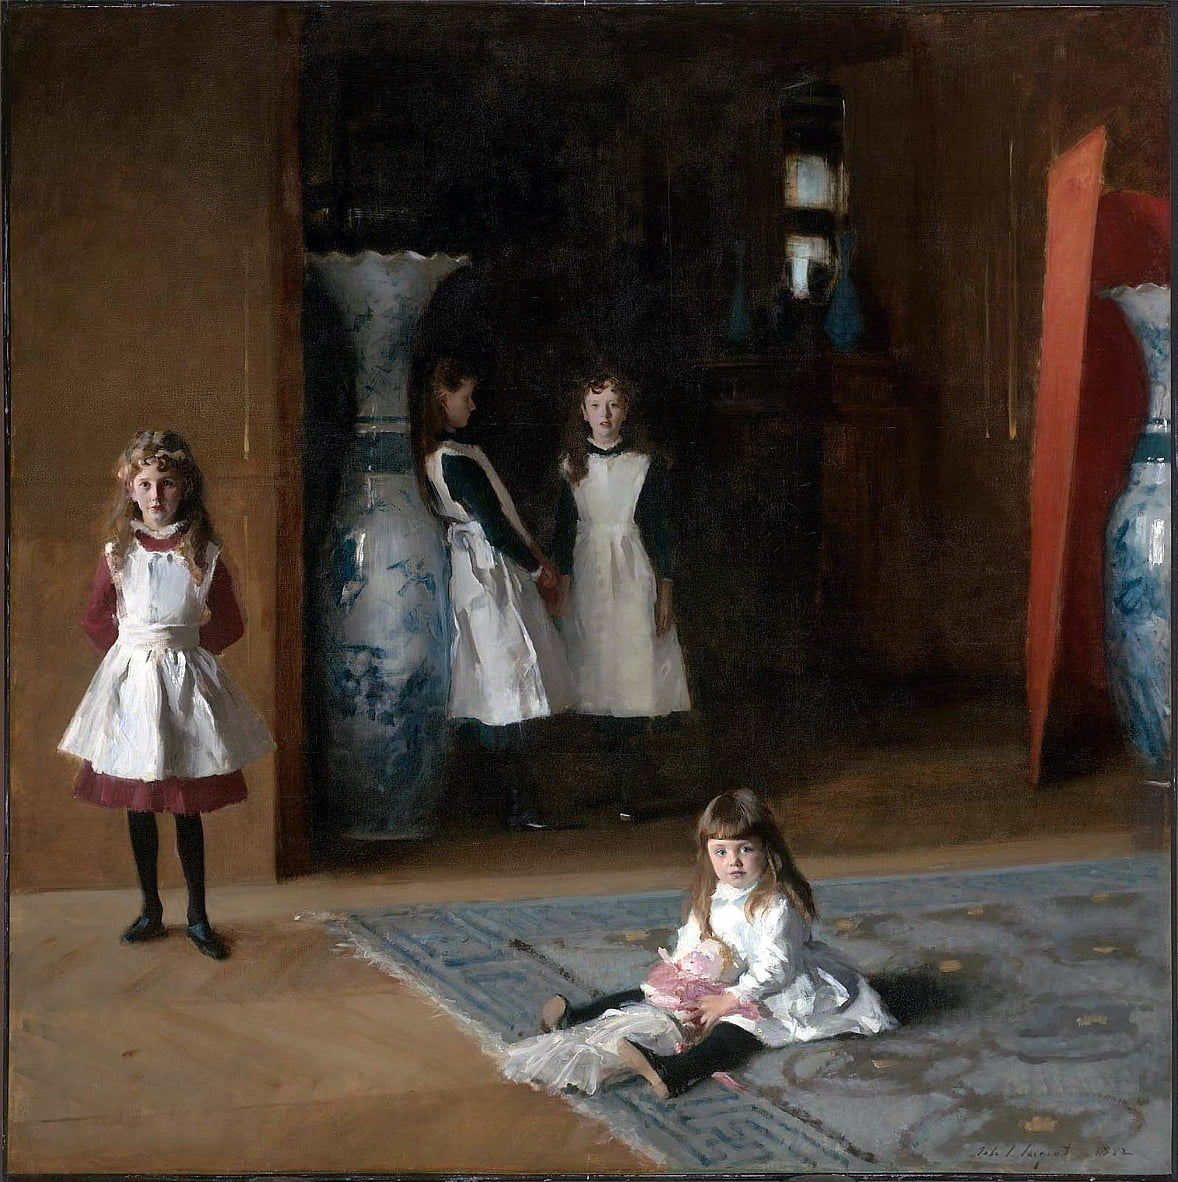 The Daughters of Edward Darley BoitnDeutsch: Die Tochter BoitnTurkce: Edward Darley Boitin KzlarnFrancais : Filles dEdward Darley Boitn  by John Singer Sargent